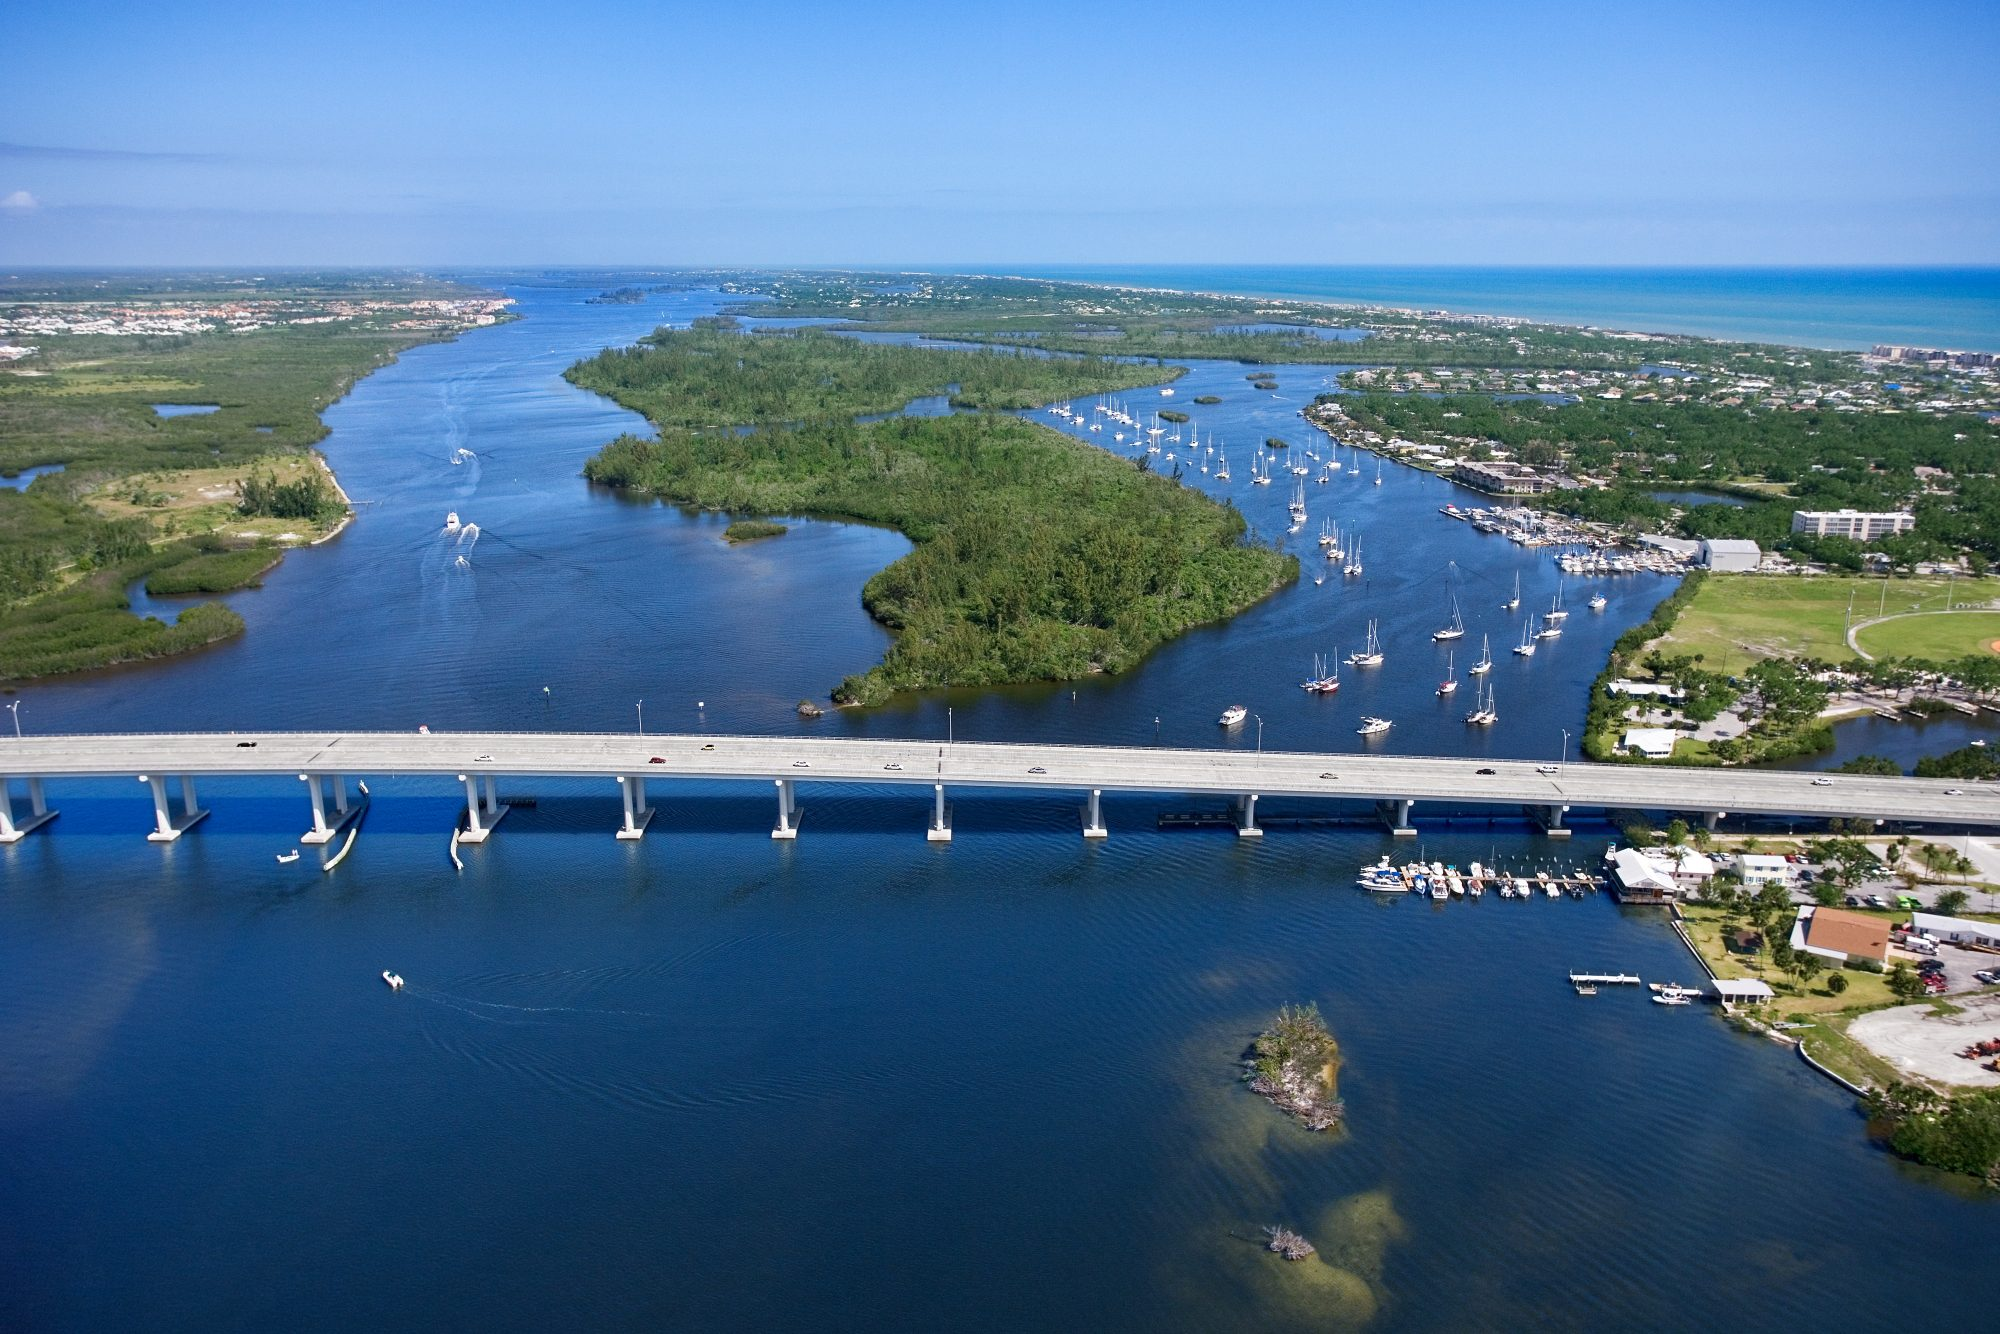 Over on the Sunshine State's east coast, Vero Beach is a nature lover's paradise with miles of hiking and biking trails, plus wildlife refuges along the coast. It's also great for retirees, with a high ratio of doctors' offices to people and a median home listing price of $275k.